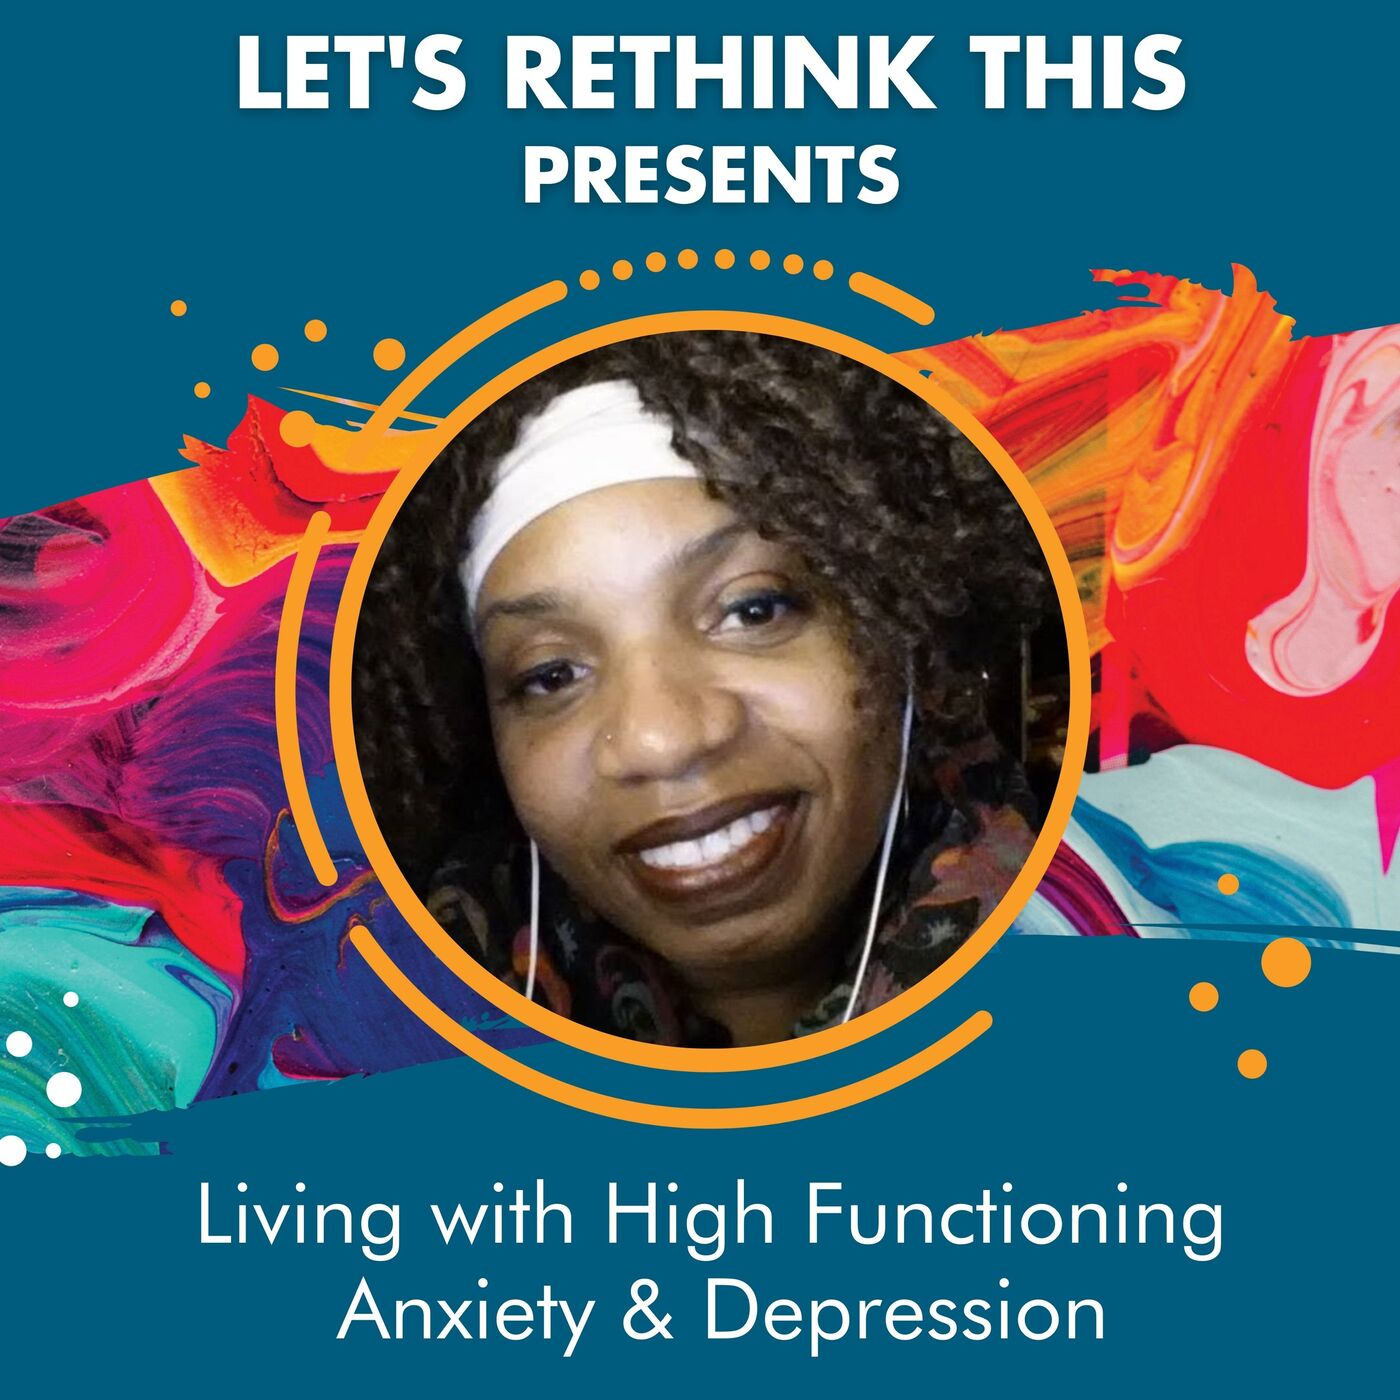 Living with High Functioning Depression & Anxiety